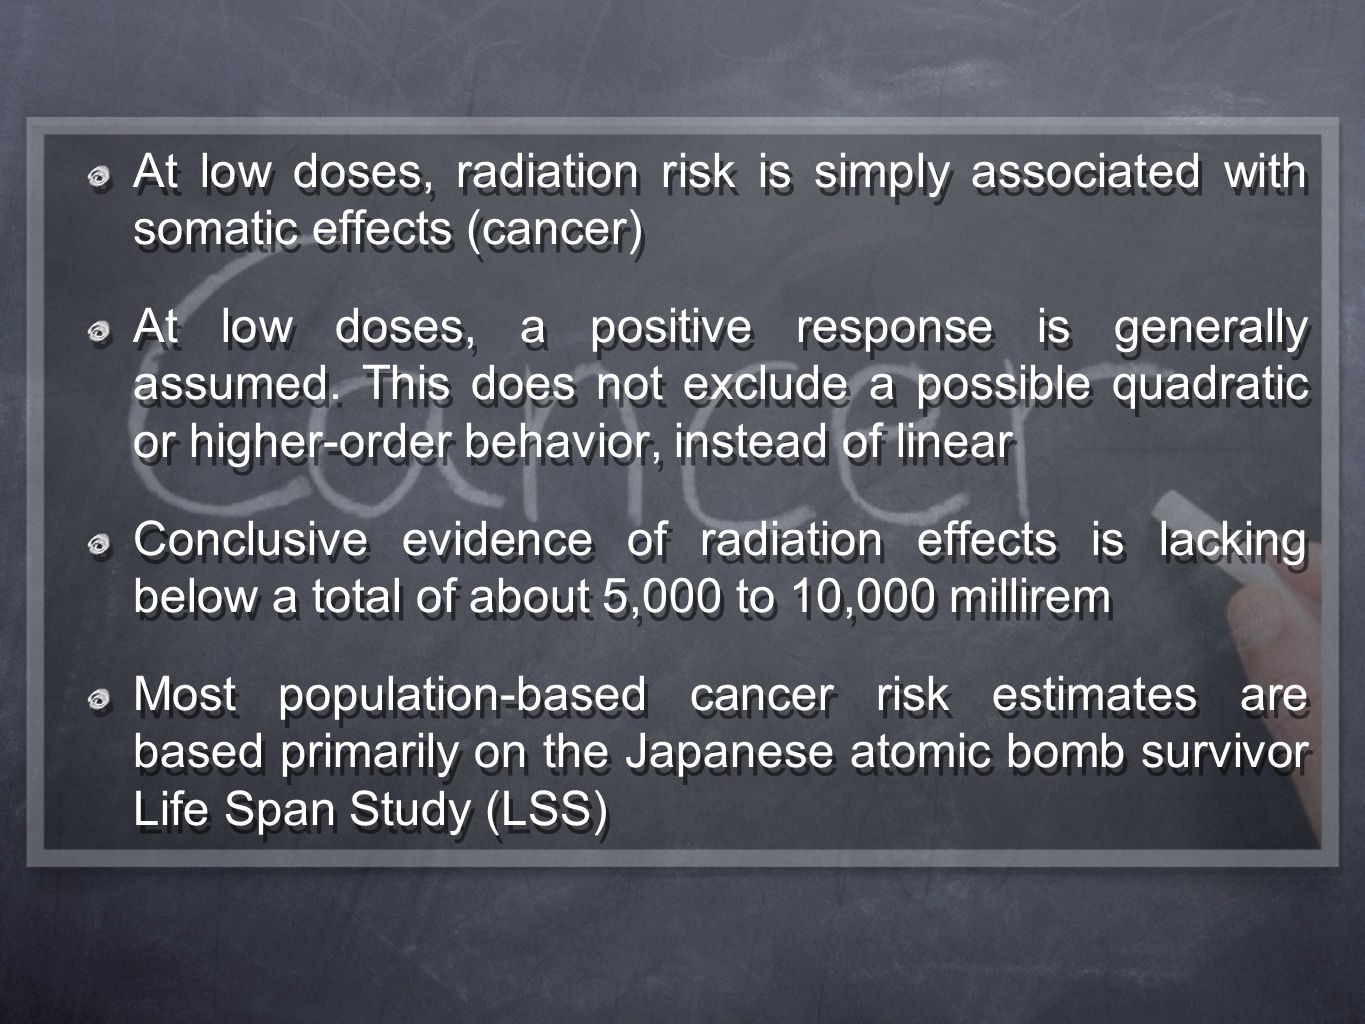 At low doses, radiation risk is simply associated with somatic effects (cancer)